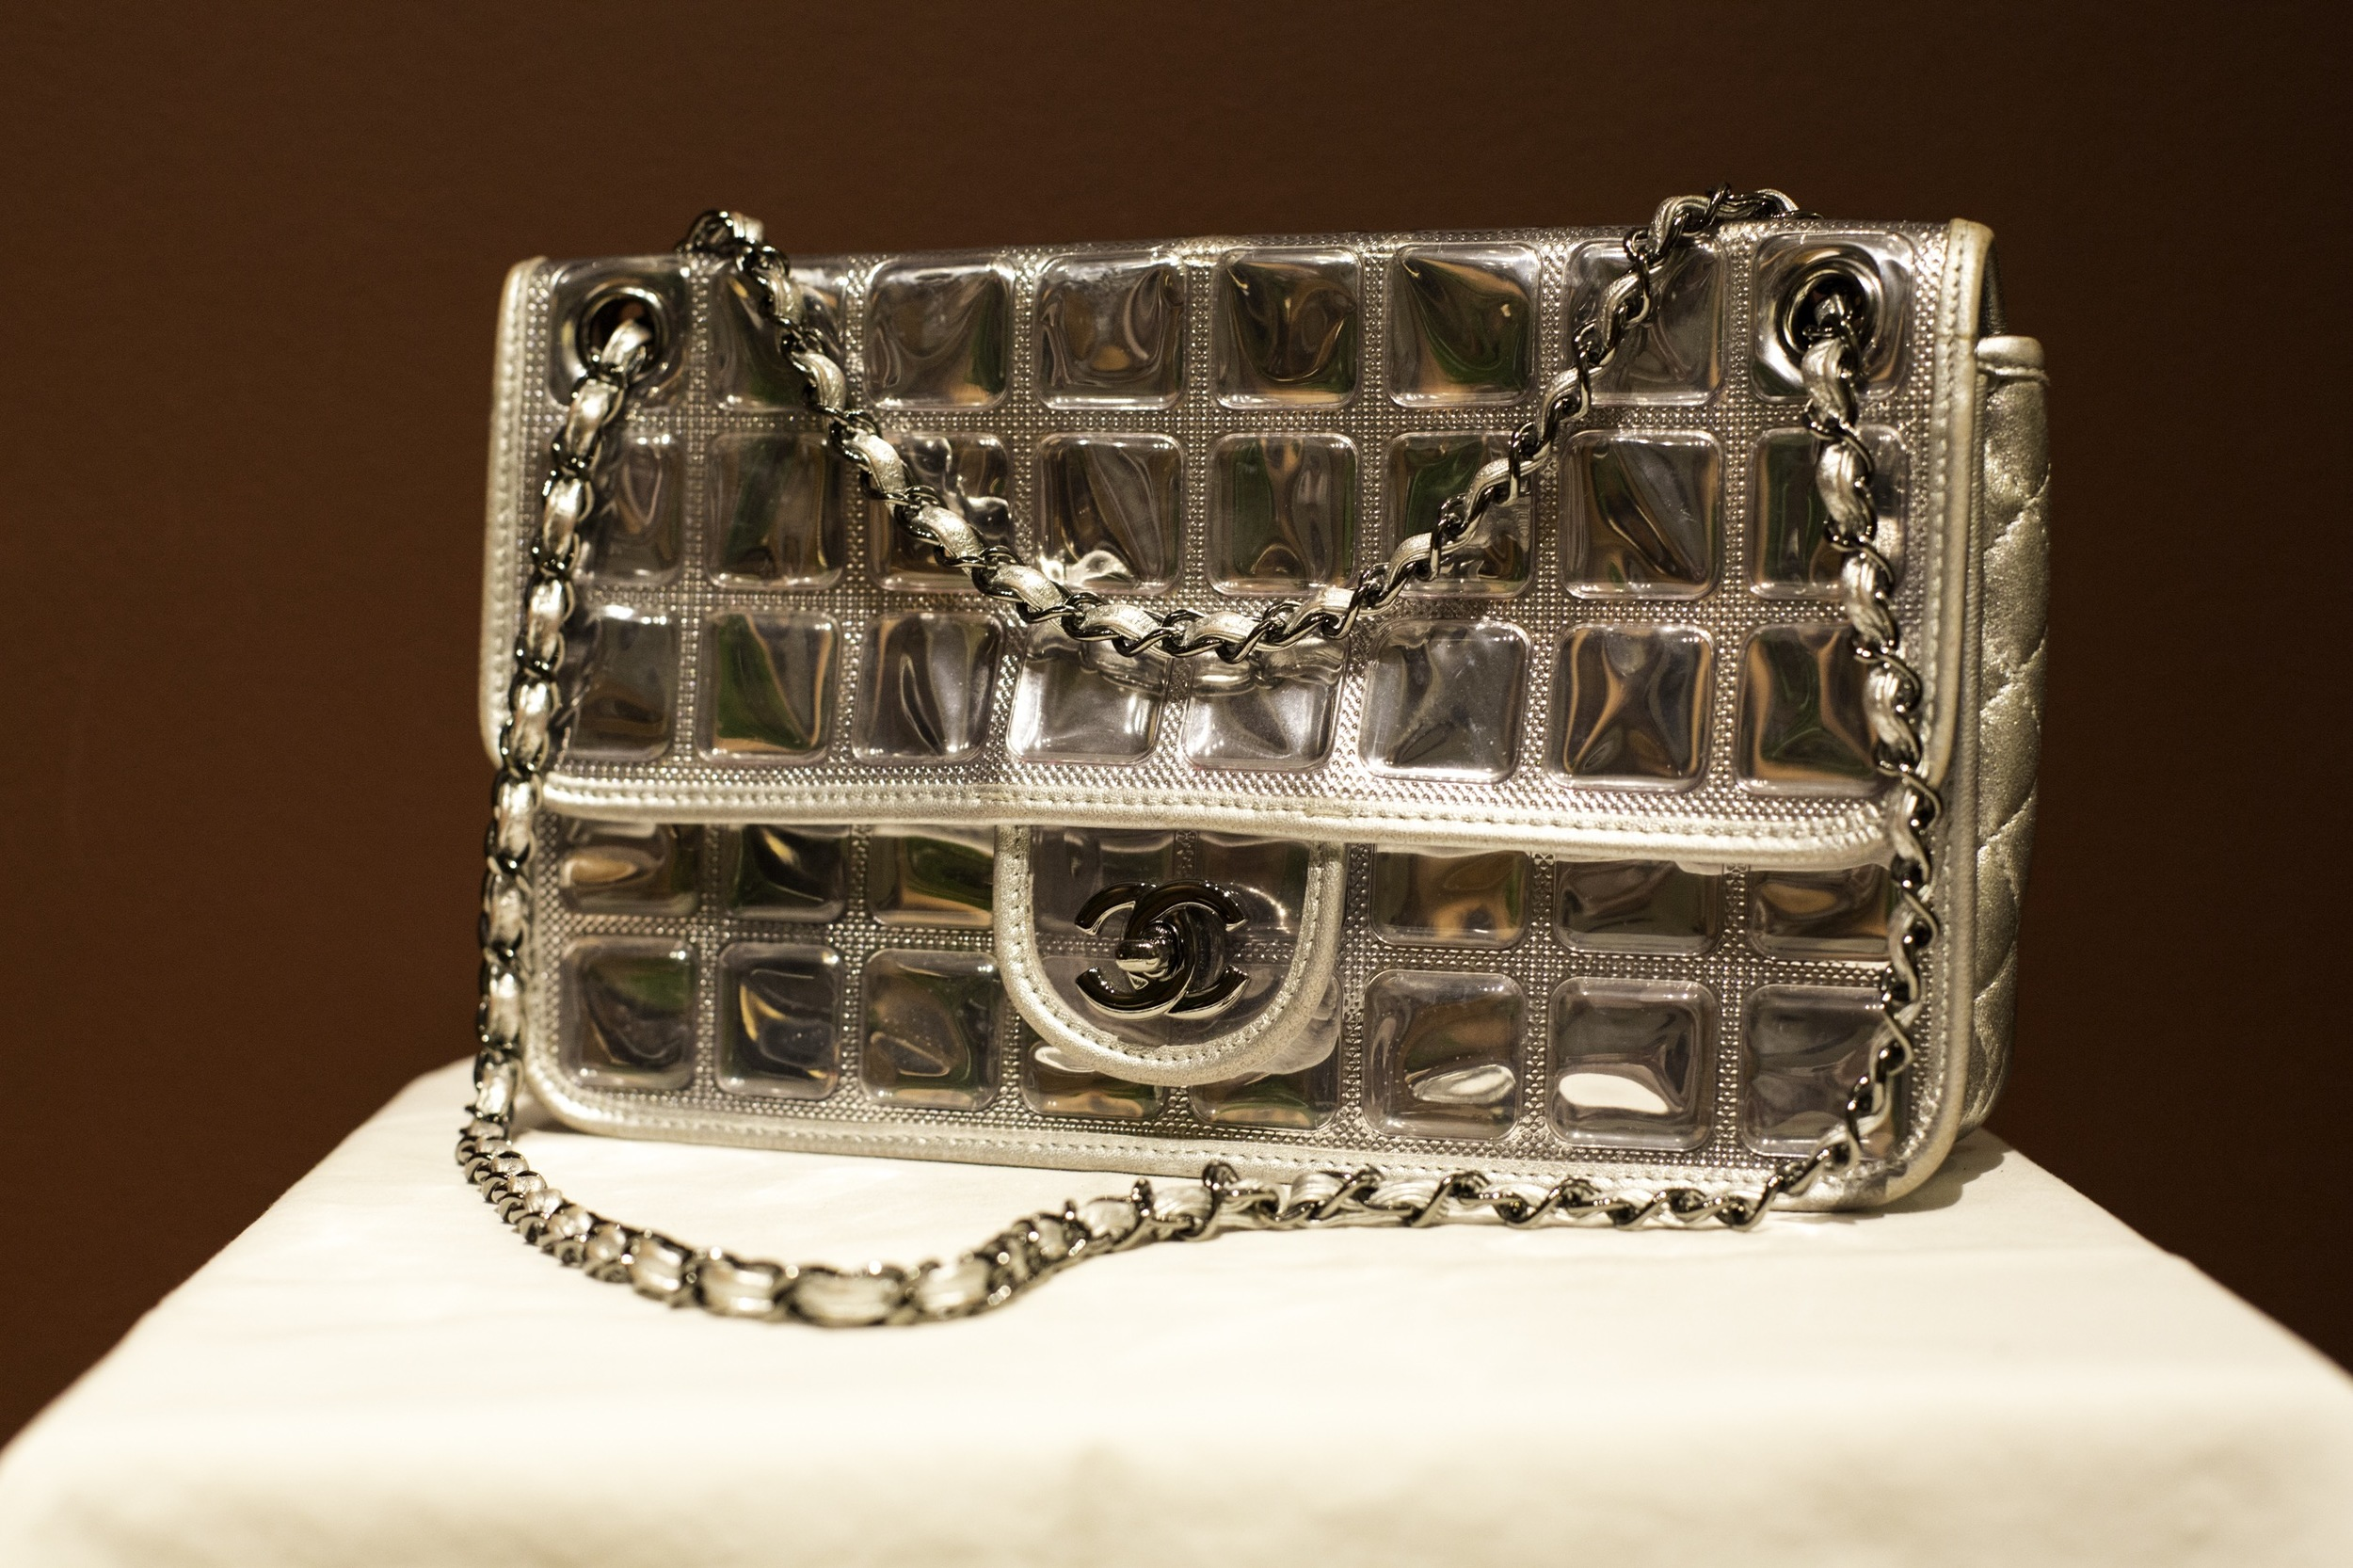 Here is my  Chanel  ice cube bag I bought in Europe years ago and I just treasure.  It's ice cube detail with metallic trim make the bag match really well with almost anything, and it's such a statement unique piece.  It was the perfect finish for a funky rock and roll look.